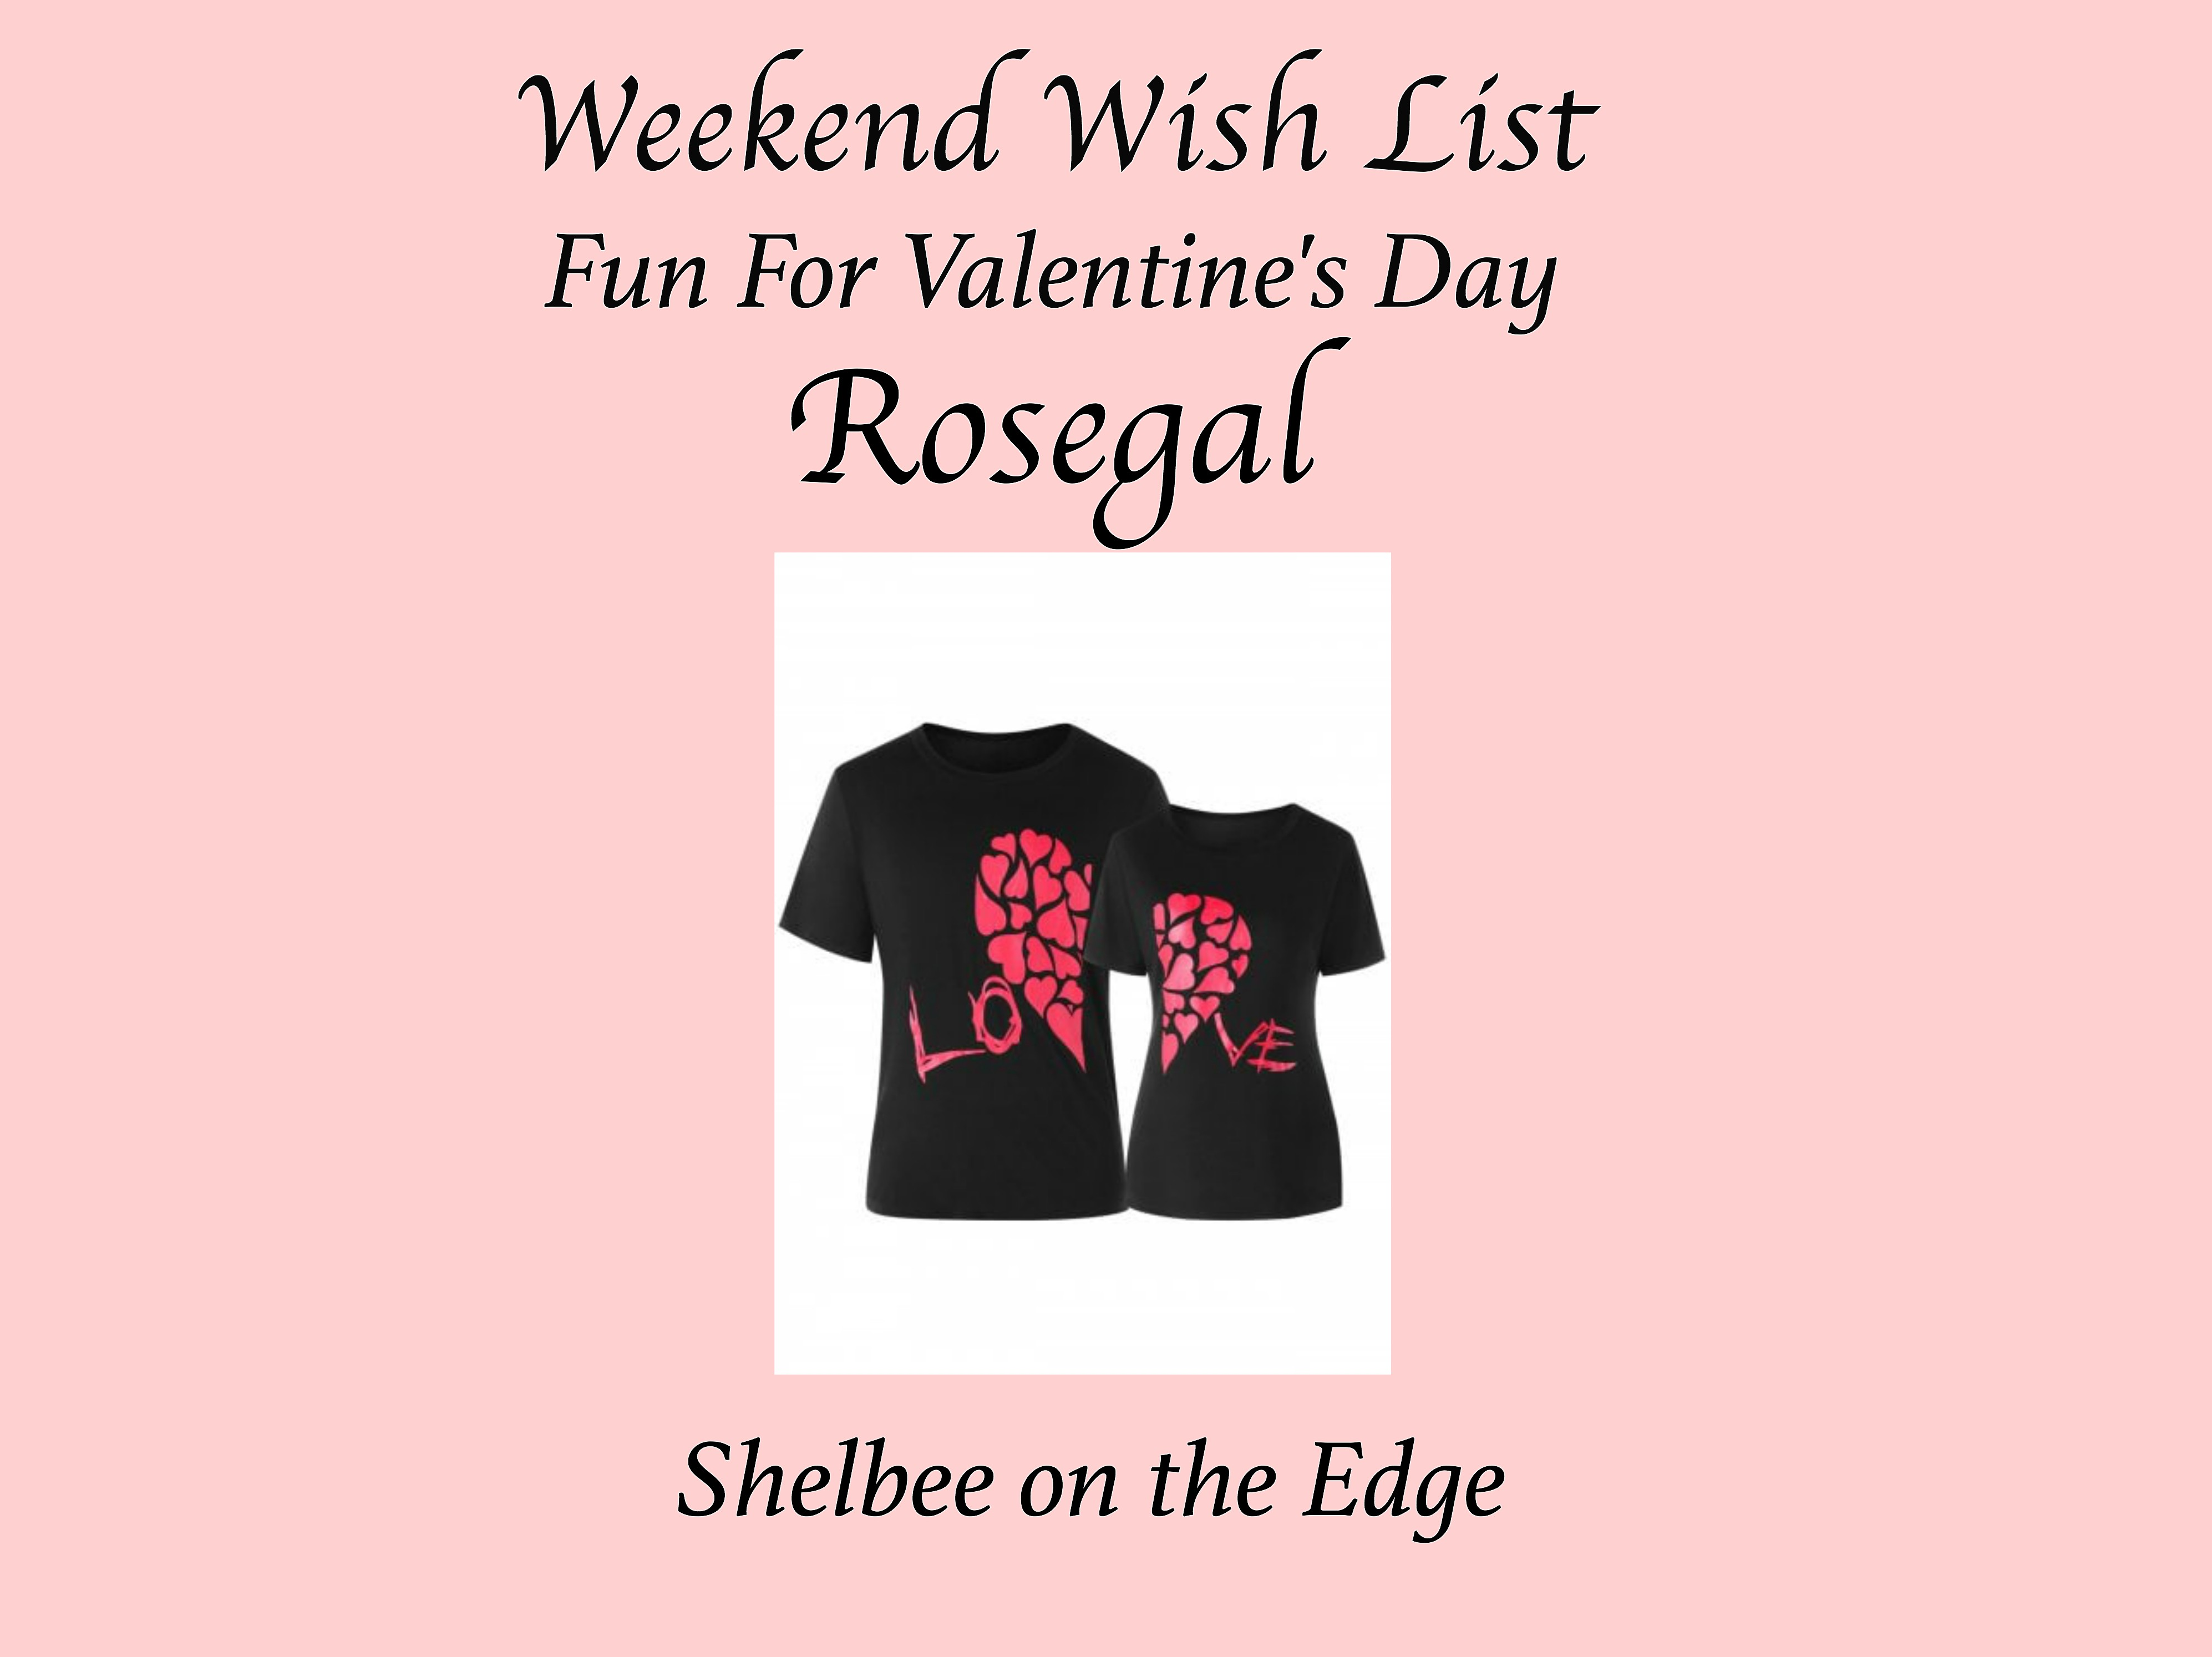 Weekend Wish List: Fun for Valentine's Day with Rosegal